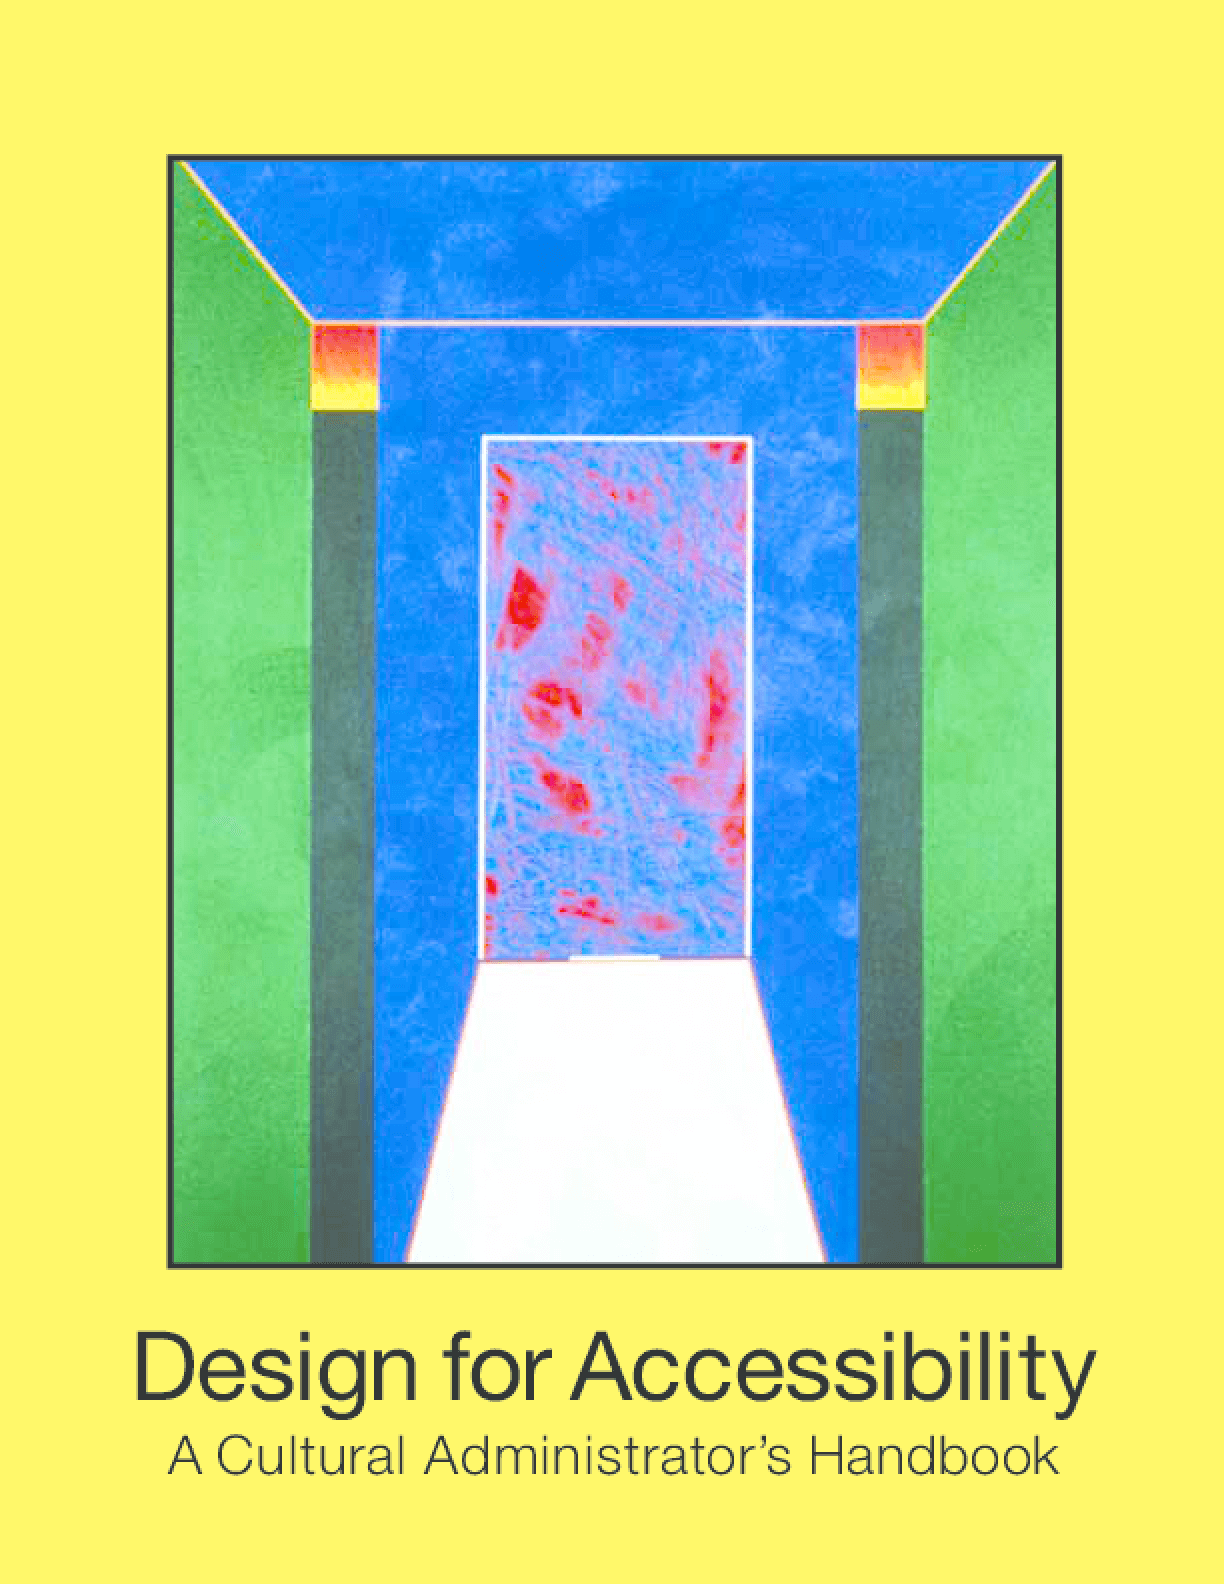 Design for Accessibility: A Cultural Administrator's Handbook